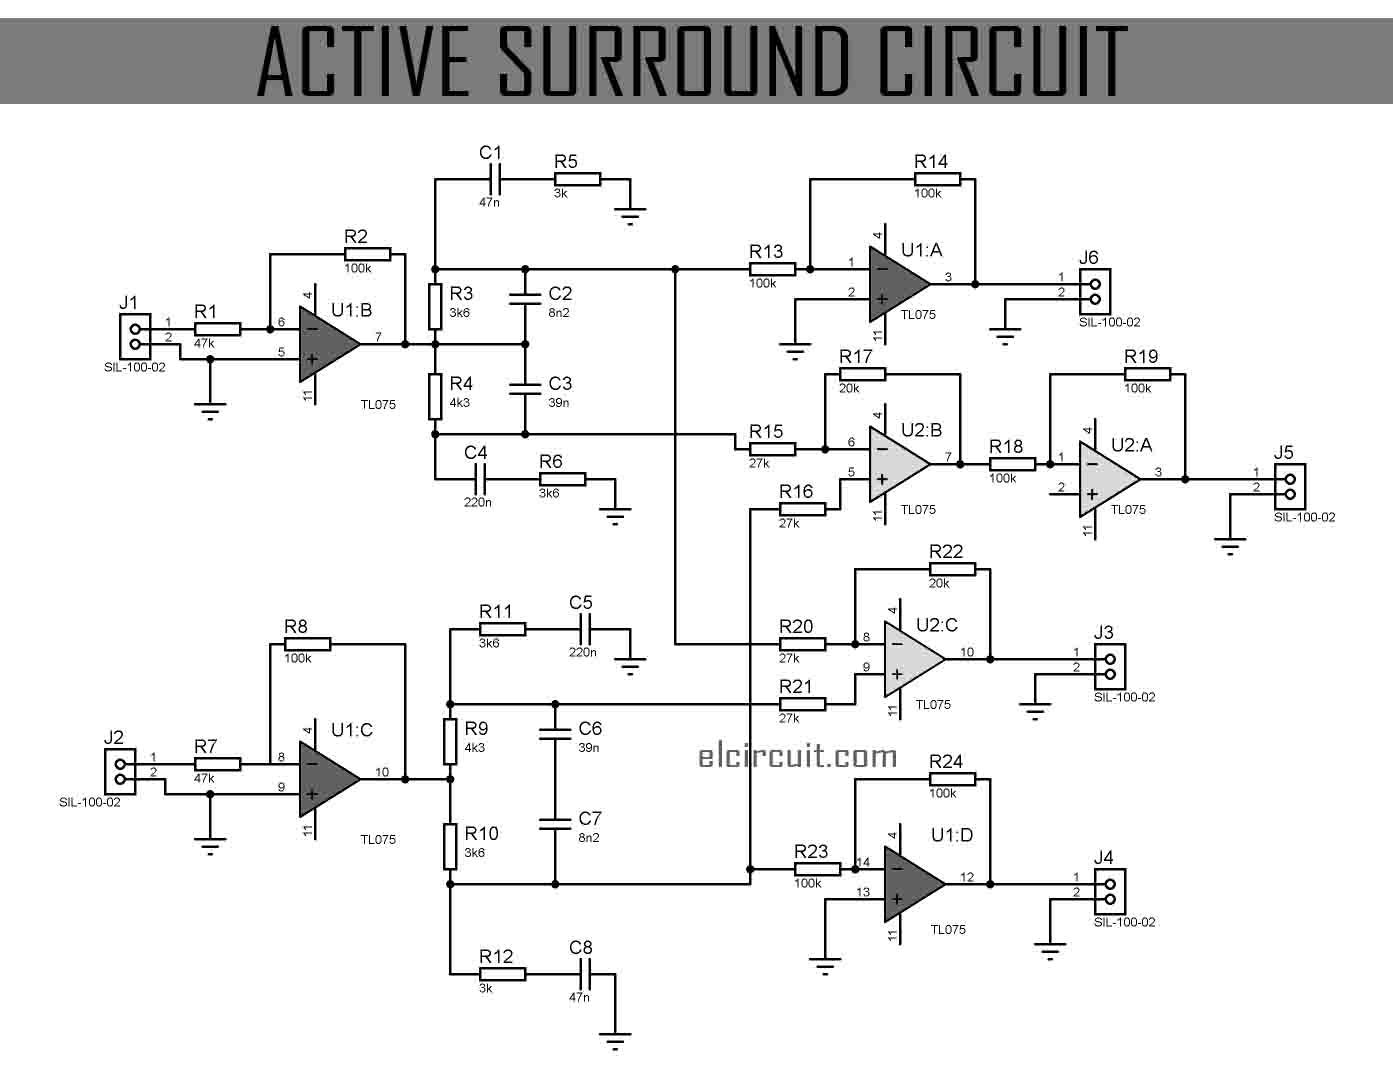 Active Surround Sound Circuit In 2018 Home Amp Pinterest Player Board Pcb With Fm Radio View Mp3 This Is Very Suitable For Converting Stereo Input Into 4